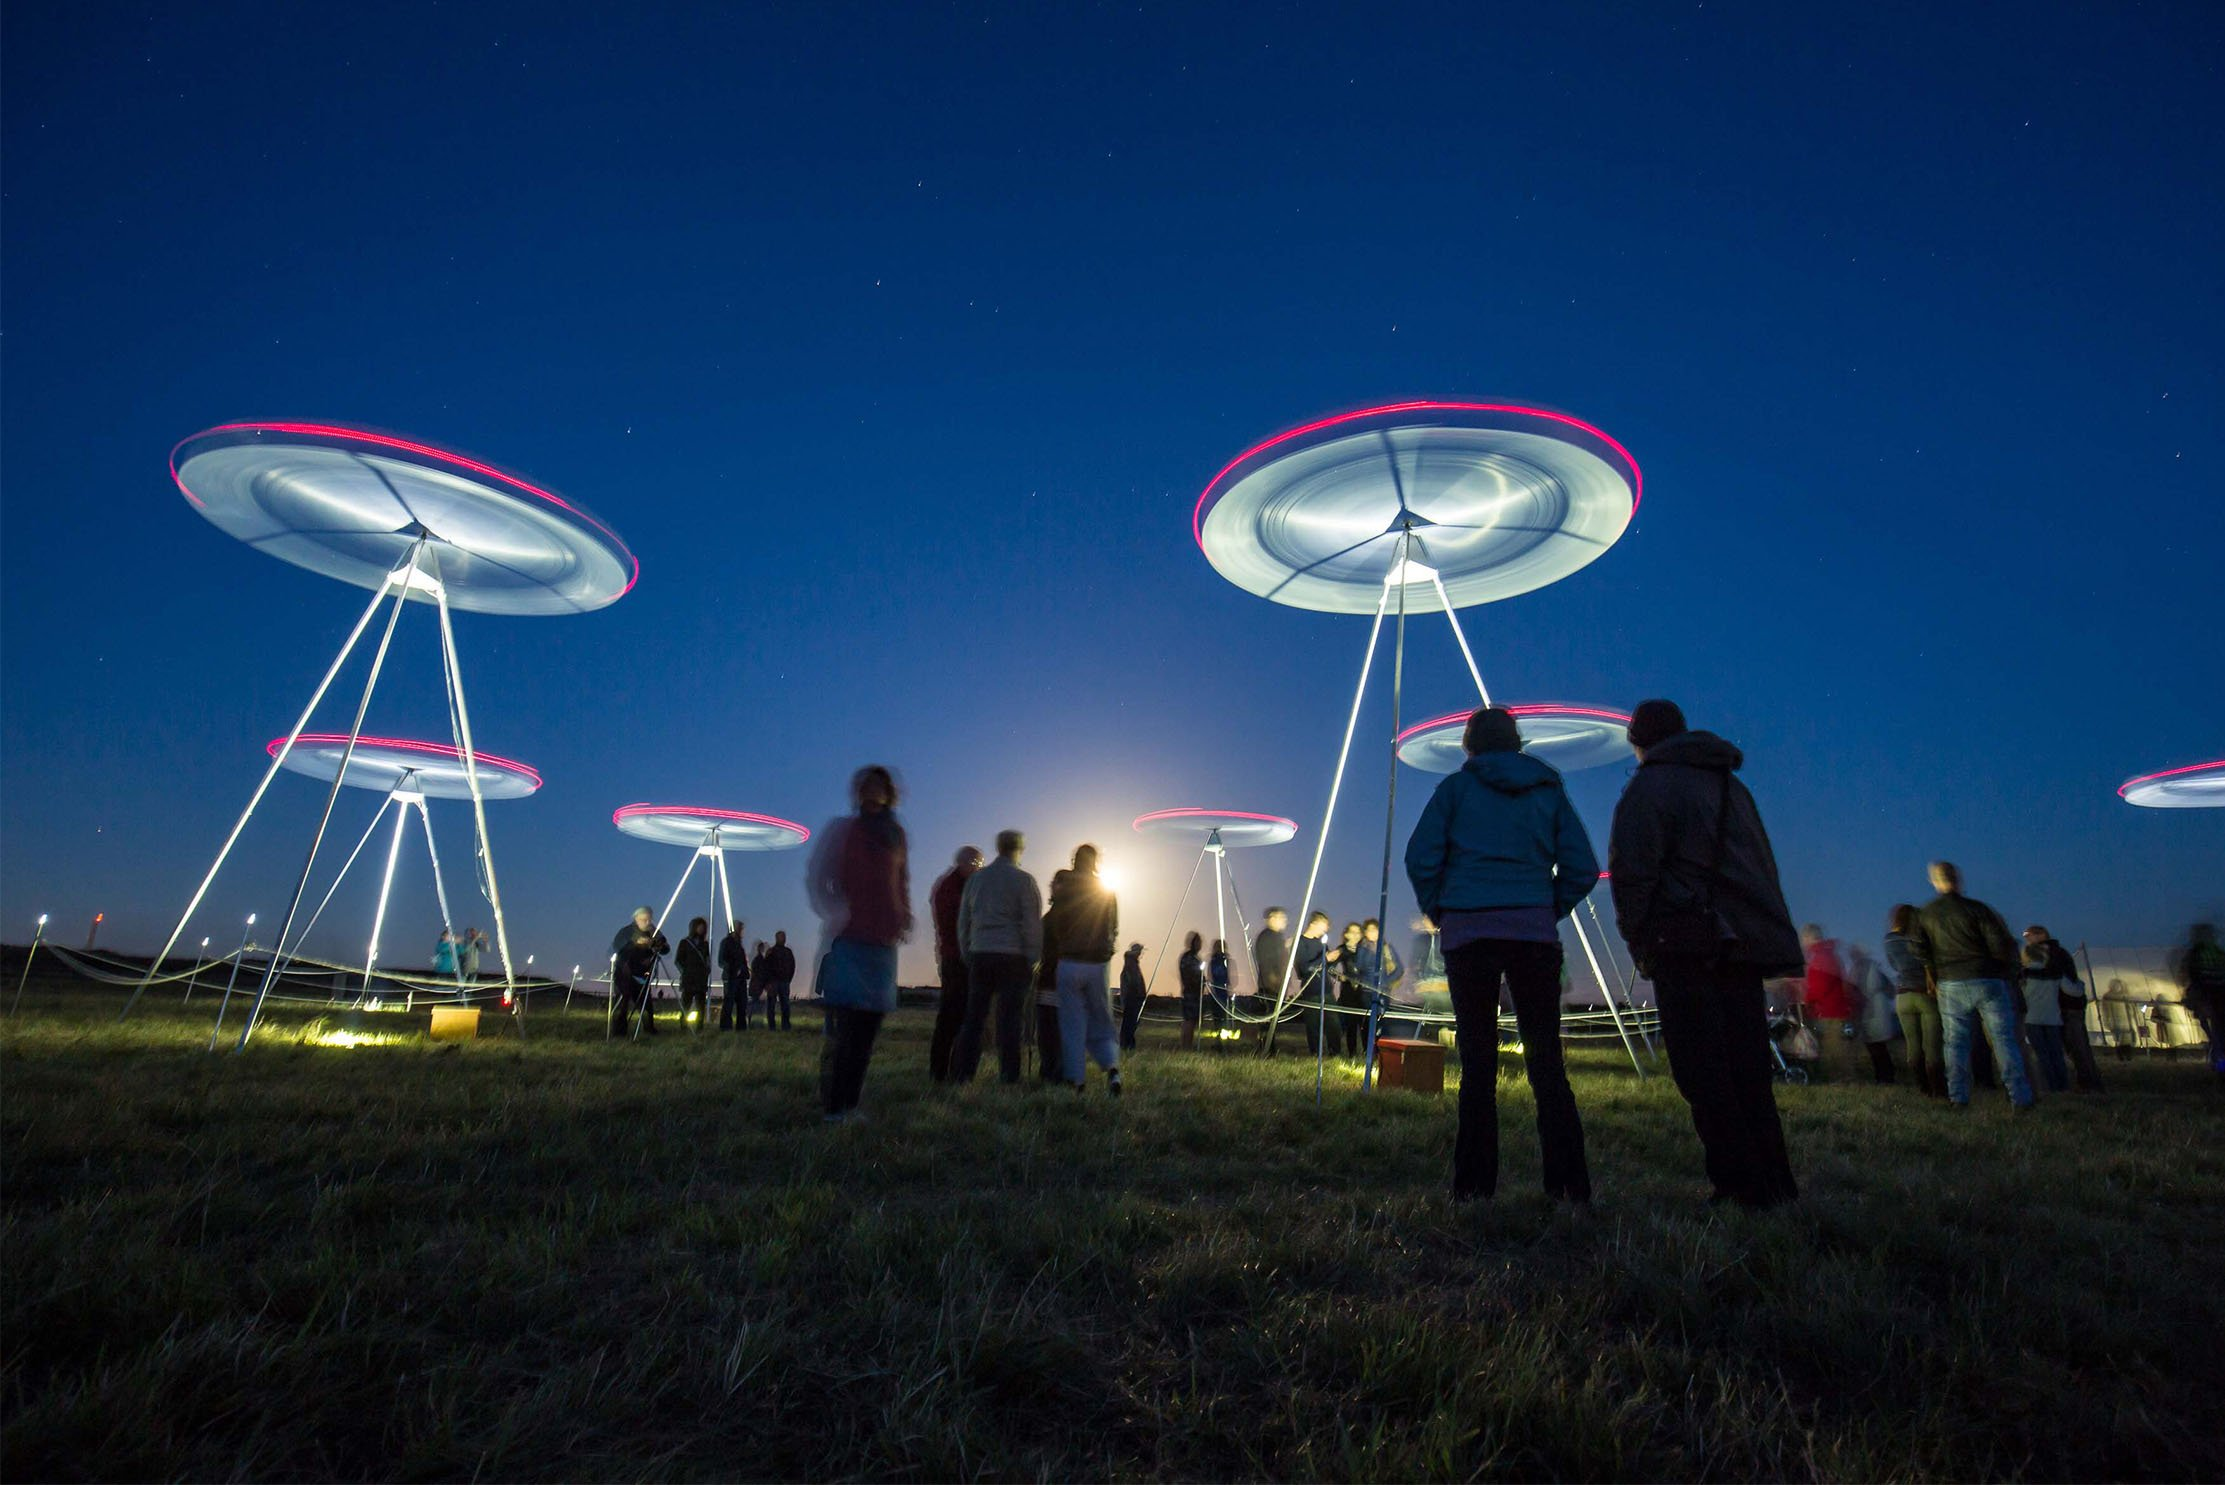 BN1 takes a look at ten of the most exciting works at Brighton Festival 2021